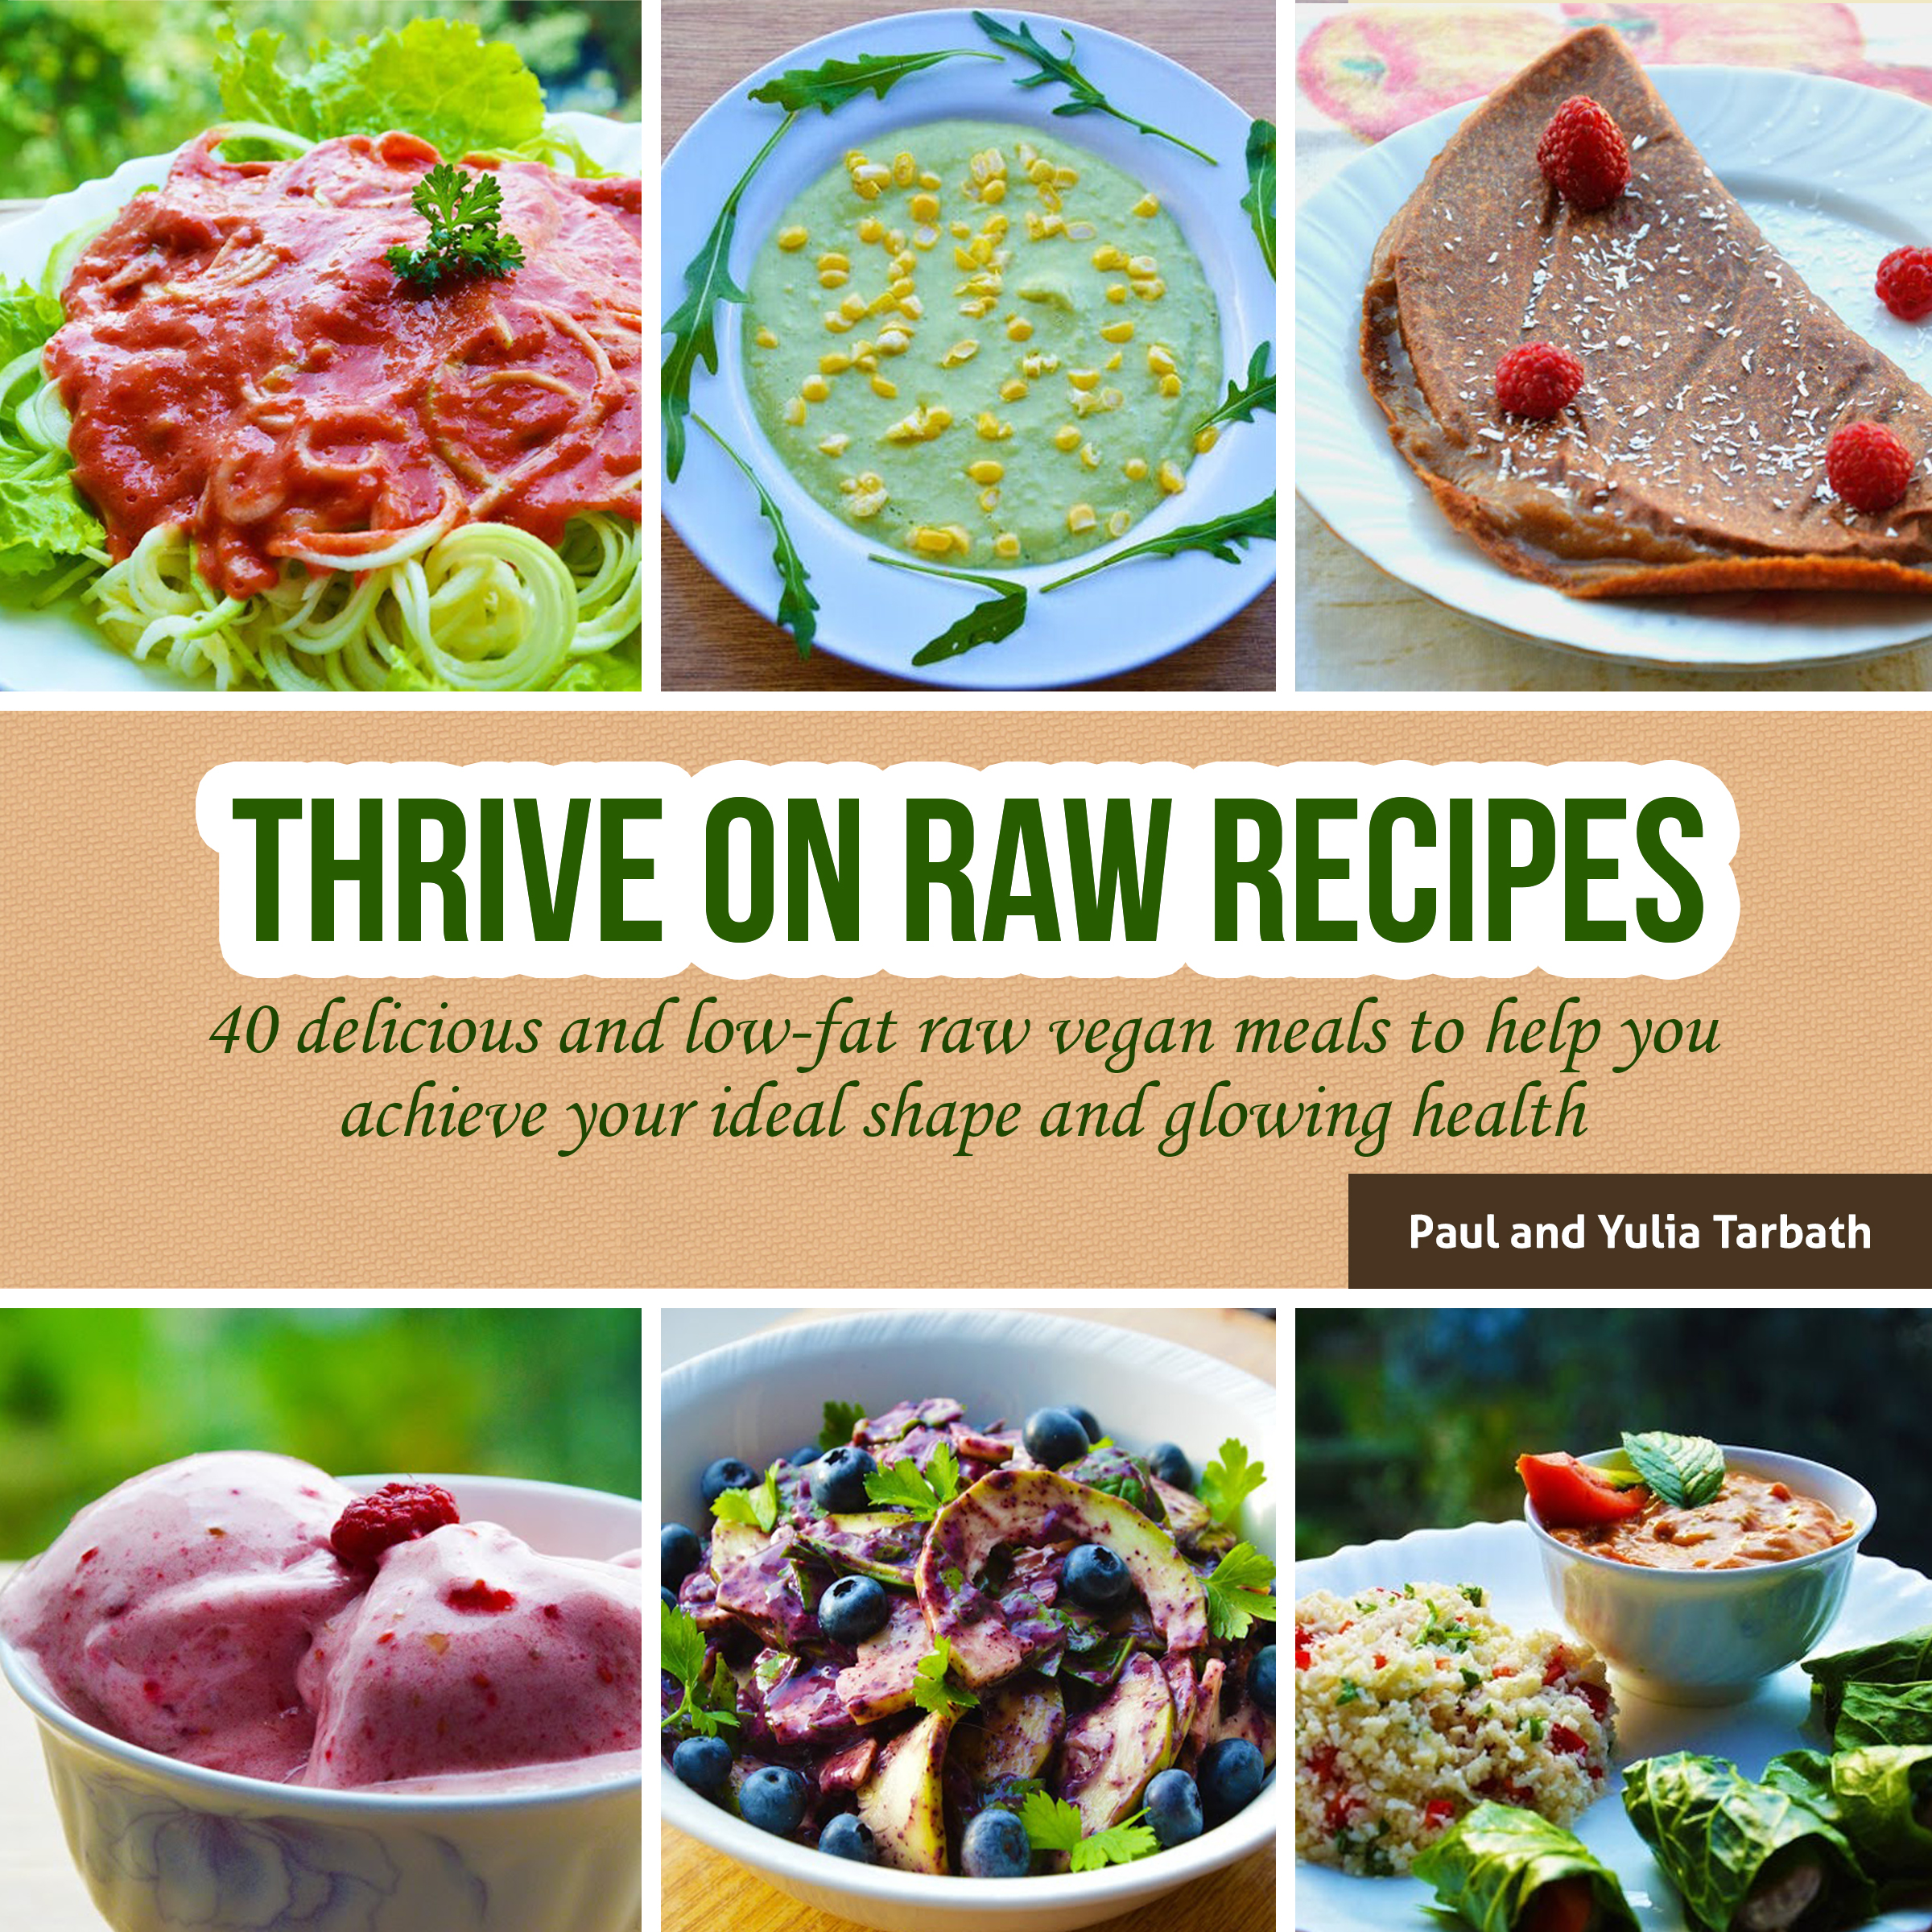 Thrive On Raw Recipes